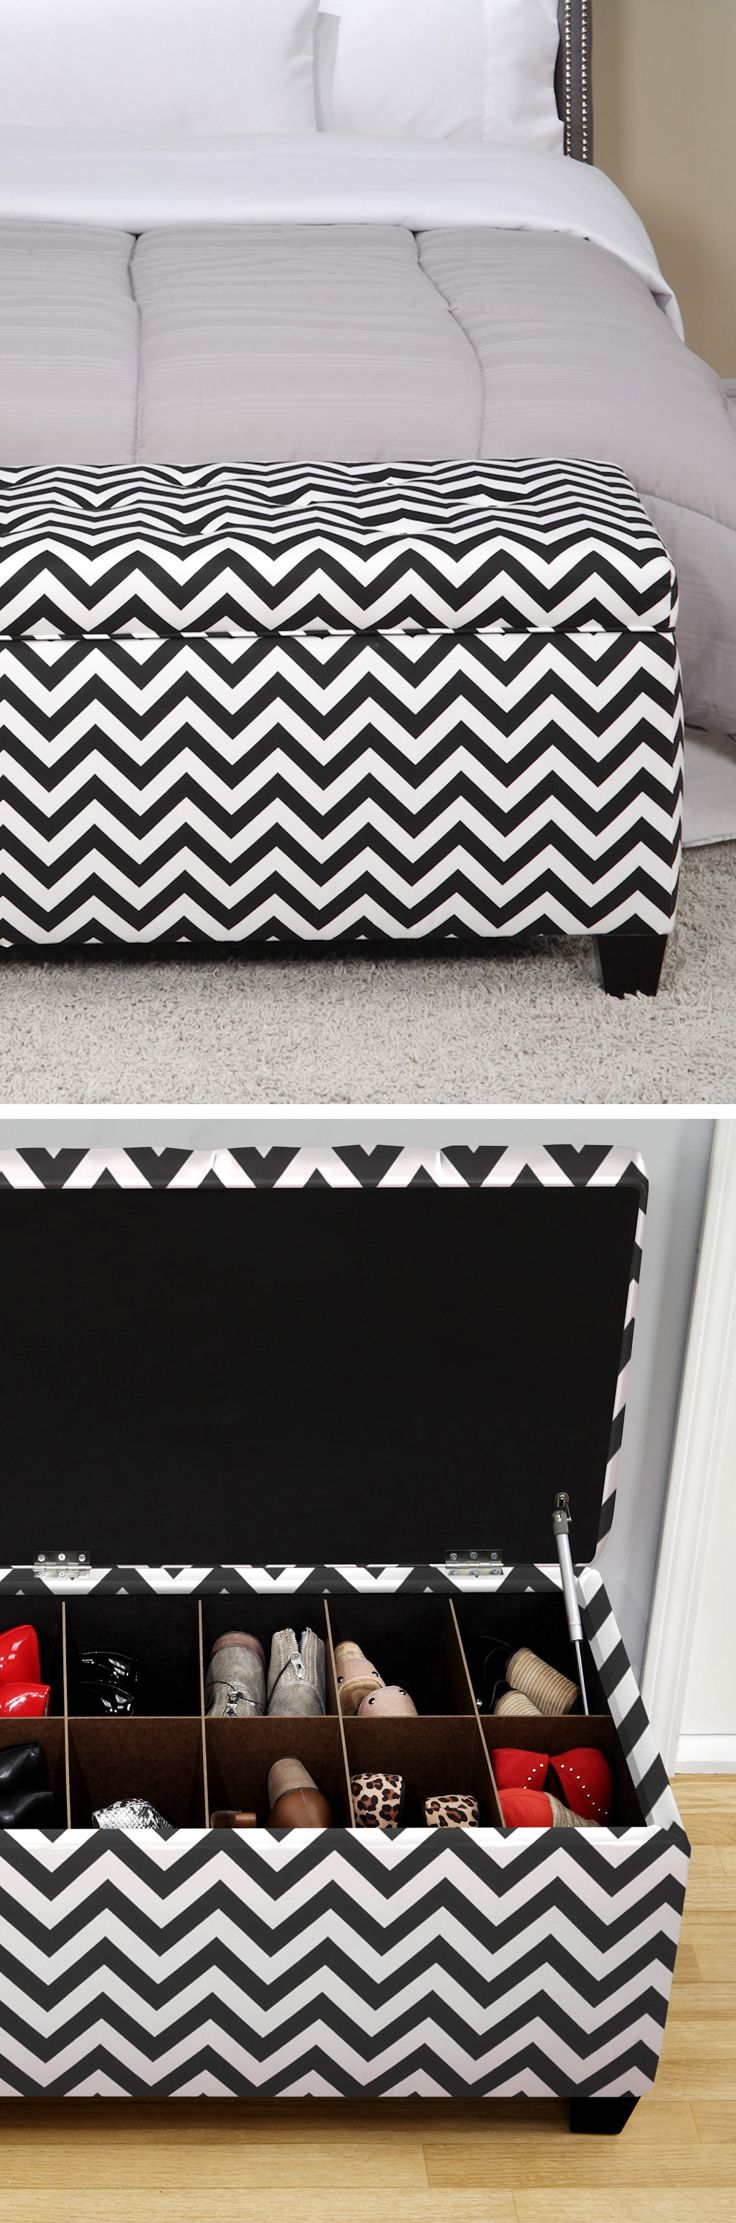 Outstanding Chevron Zig Zag Shoe Storage Ottoman Bench Perfect For Ocoug Best Dining Table And Chair Ideas Images Ocougorg